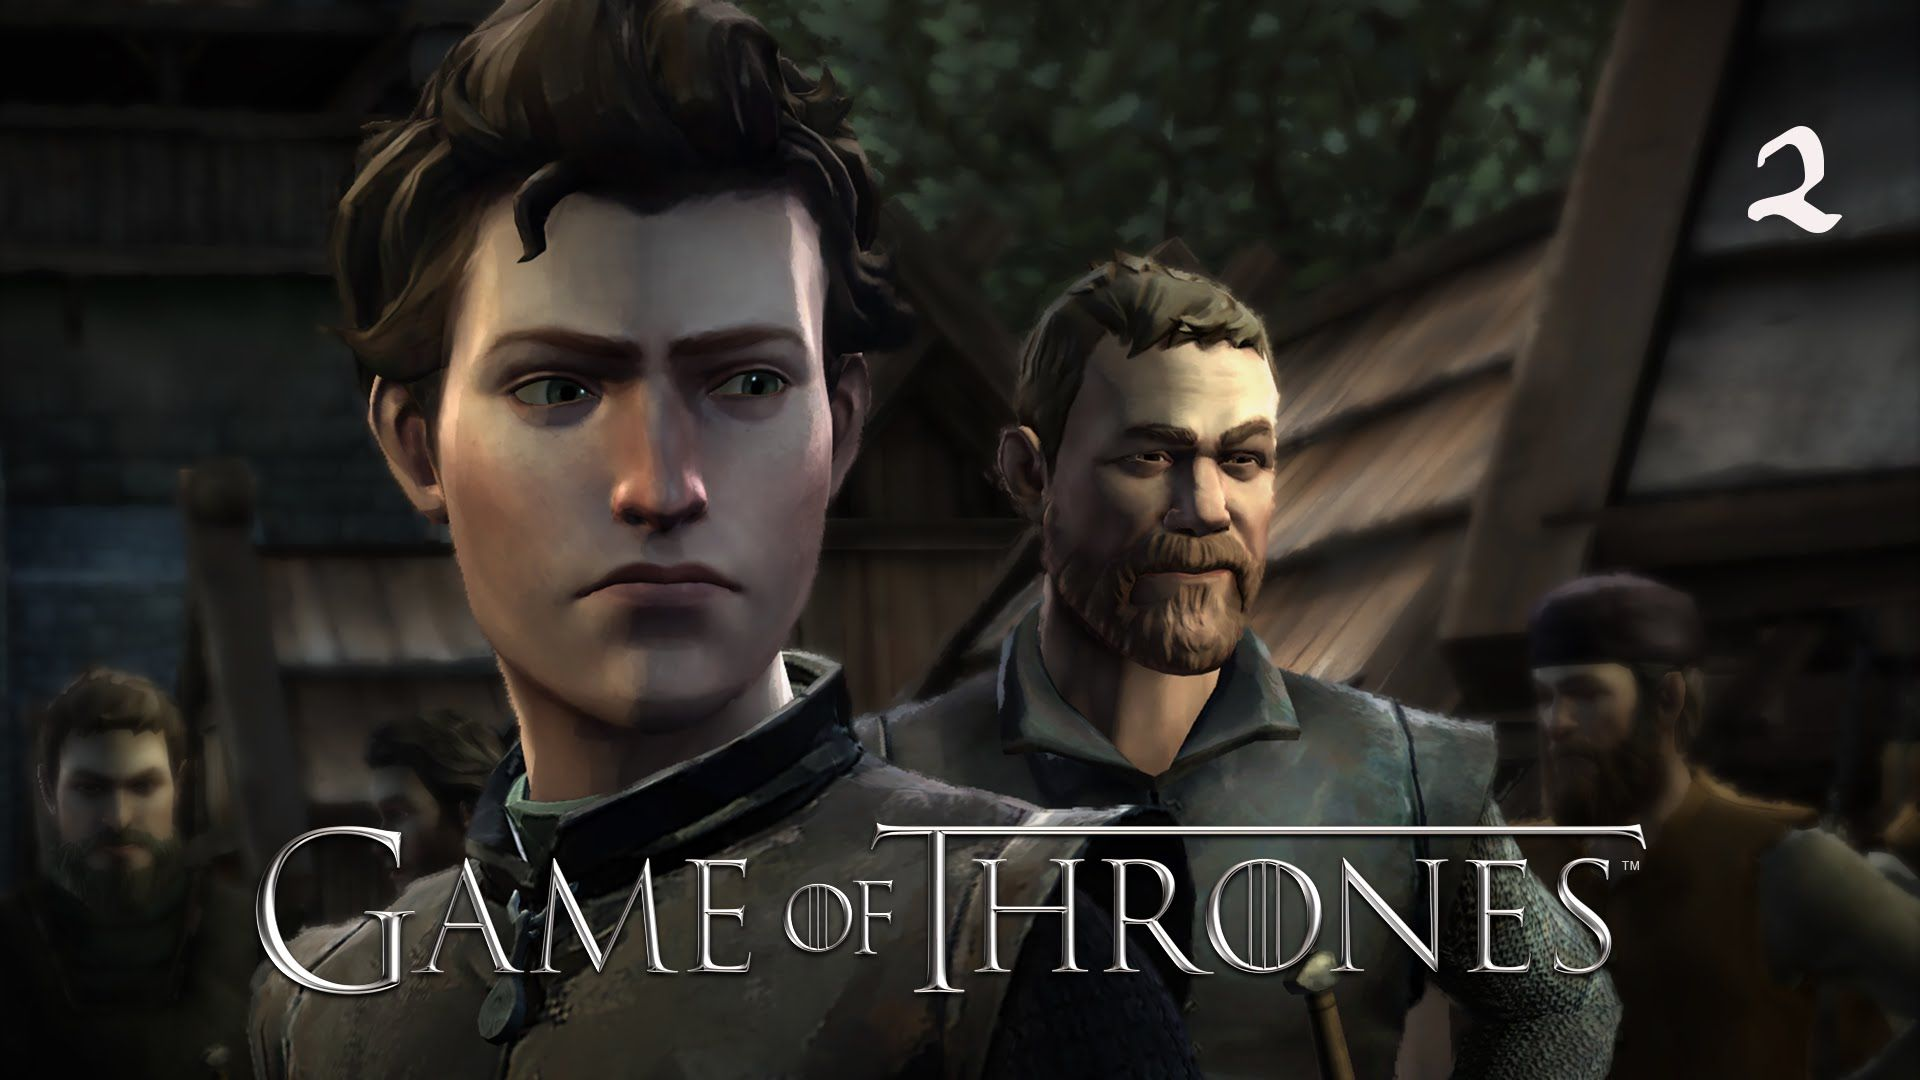 Game of Thrones - Telltale Games - Episode 1: Iron from Ice -  Part 2